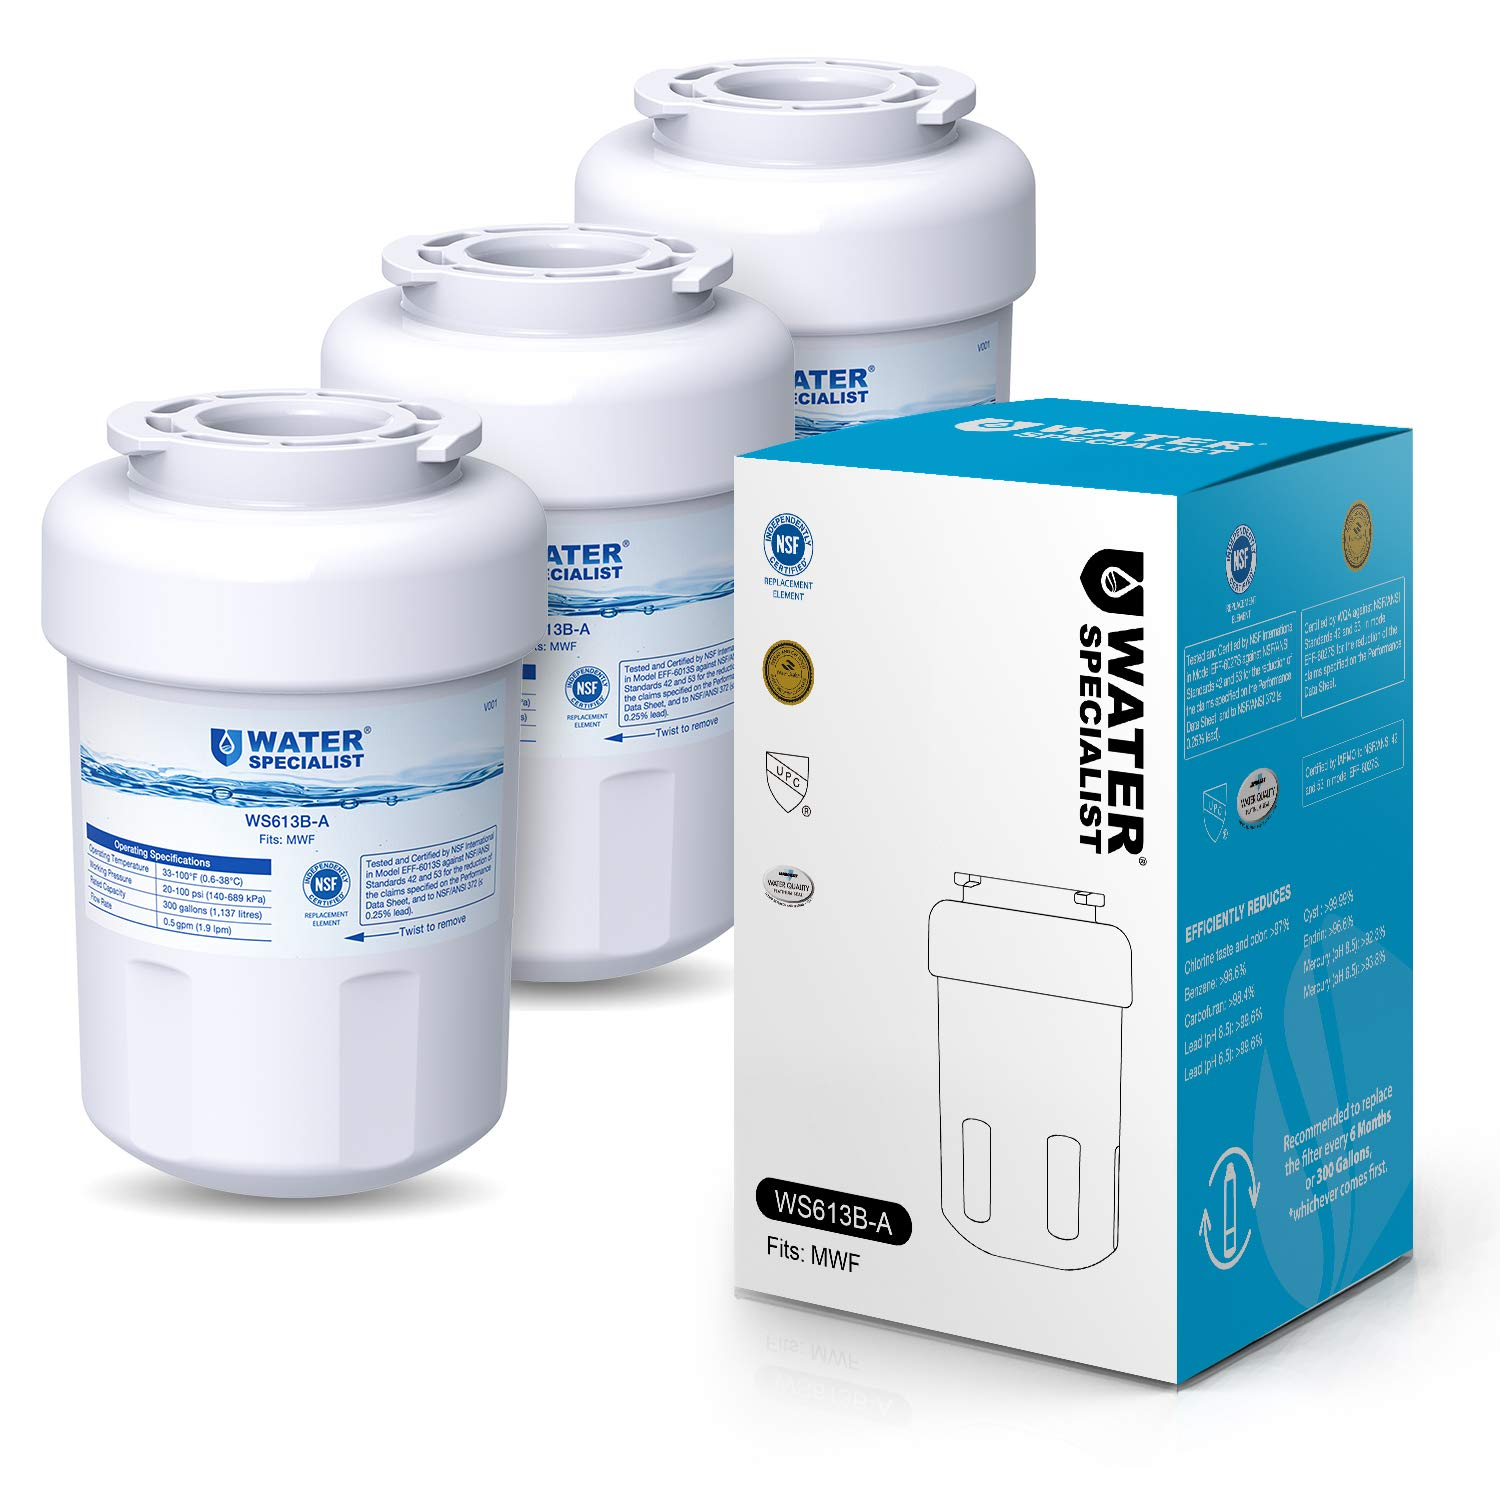 Waterspecialist NSF 53&42 Certified MWF Refrigerator Water Filter, Replacement for GE SmartWater MWFP , MWFA, GWF, HDX FMG-1, WFC1201, GSE25GSHECSS, PC75009, RWF1060, 197D6321P006 (Pack of 3) by Waterspecialist